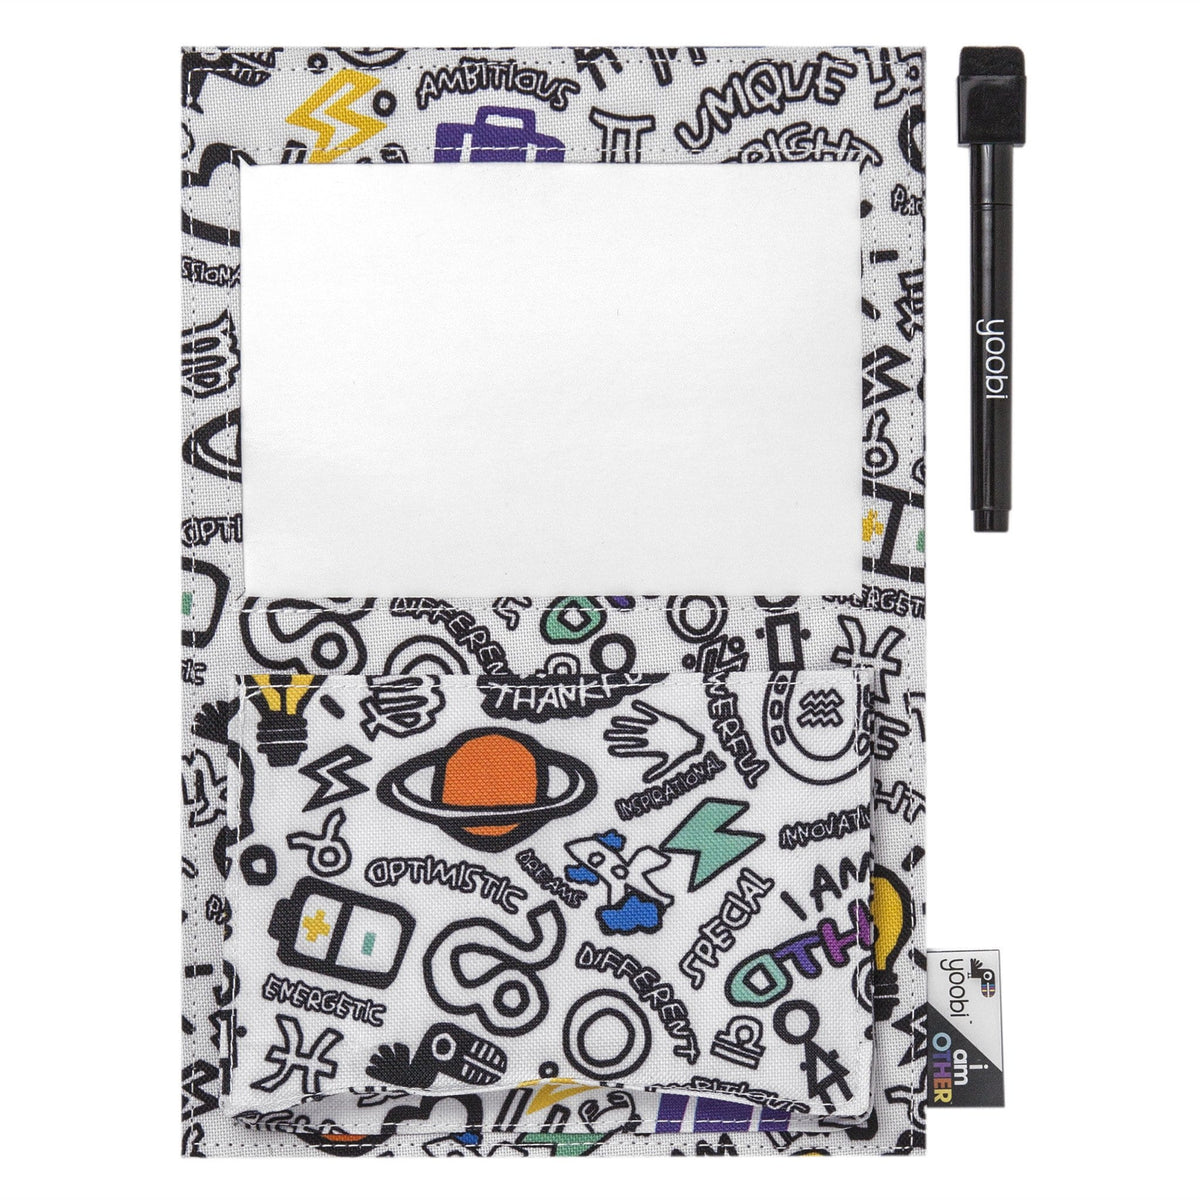 0f9ba6422 Yoobi x i am OTHER Magnetic Whiteboard Pocket - DIY Print